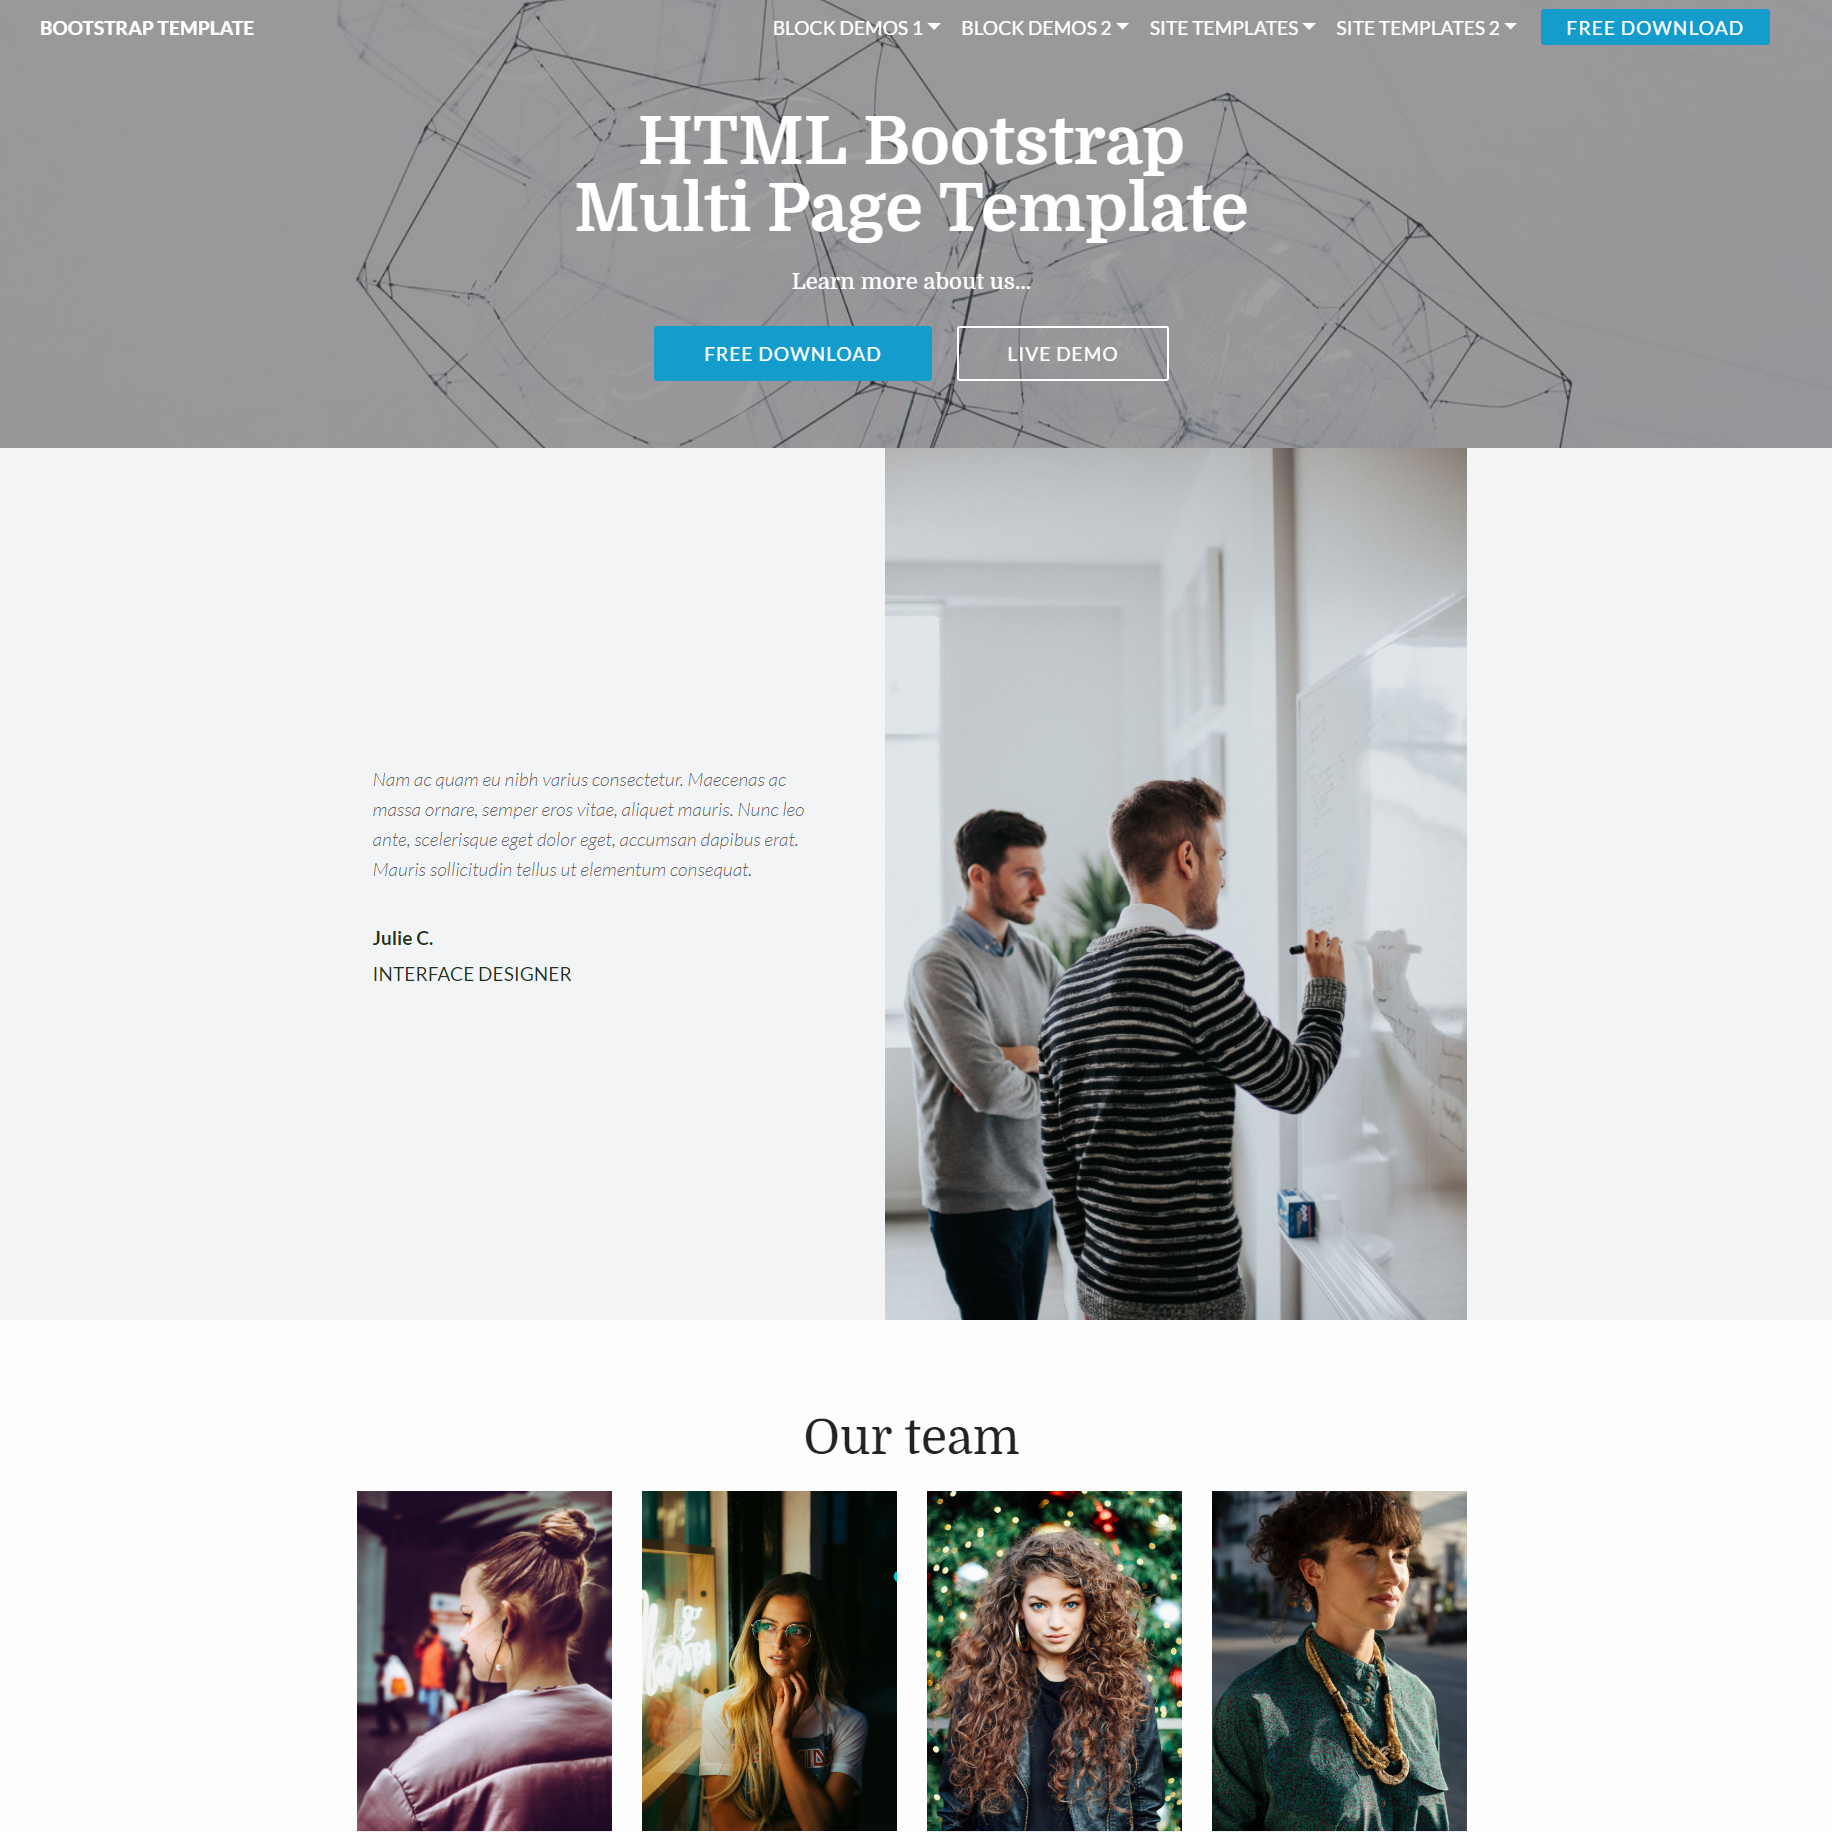 Free Bootstrap Multi page Templates